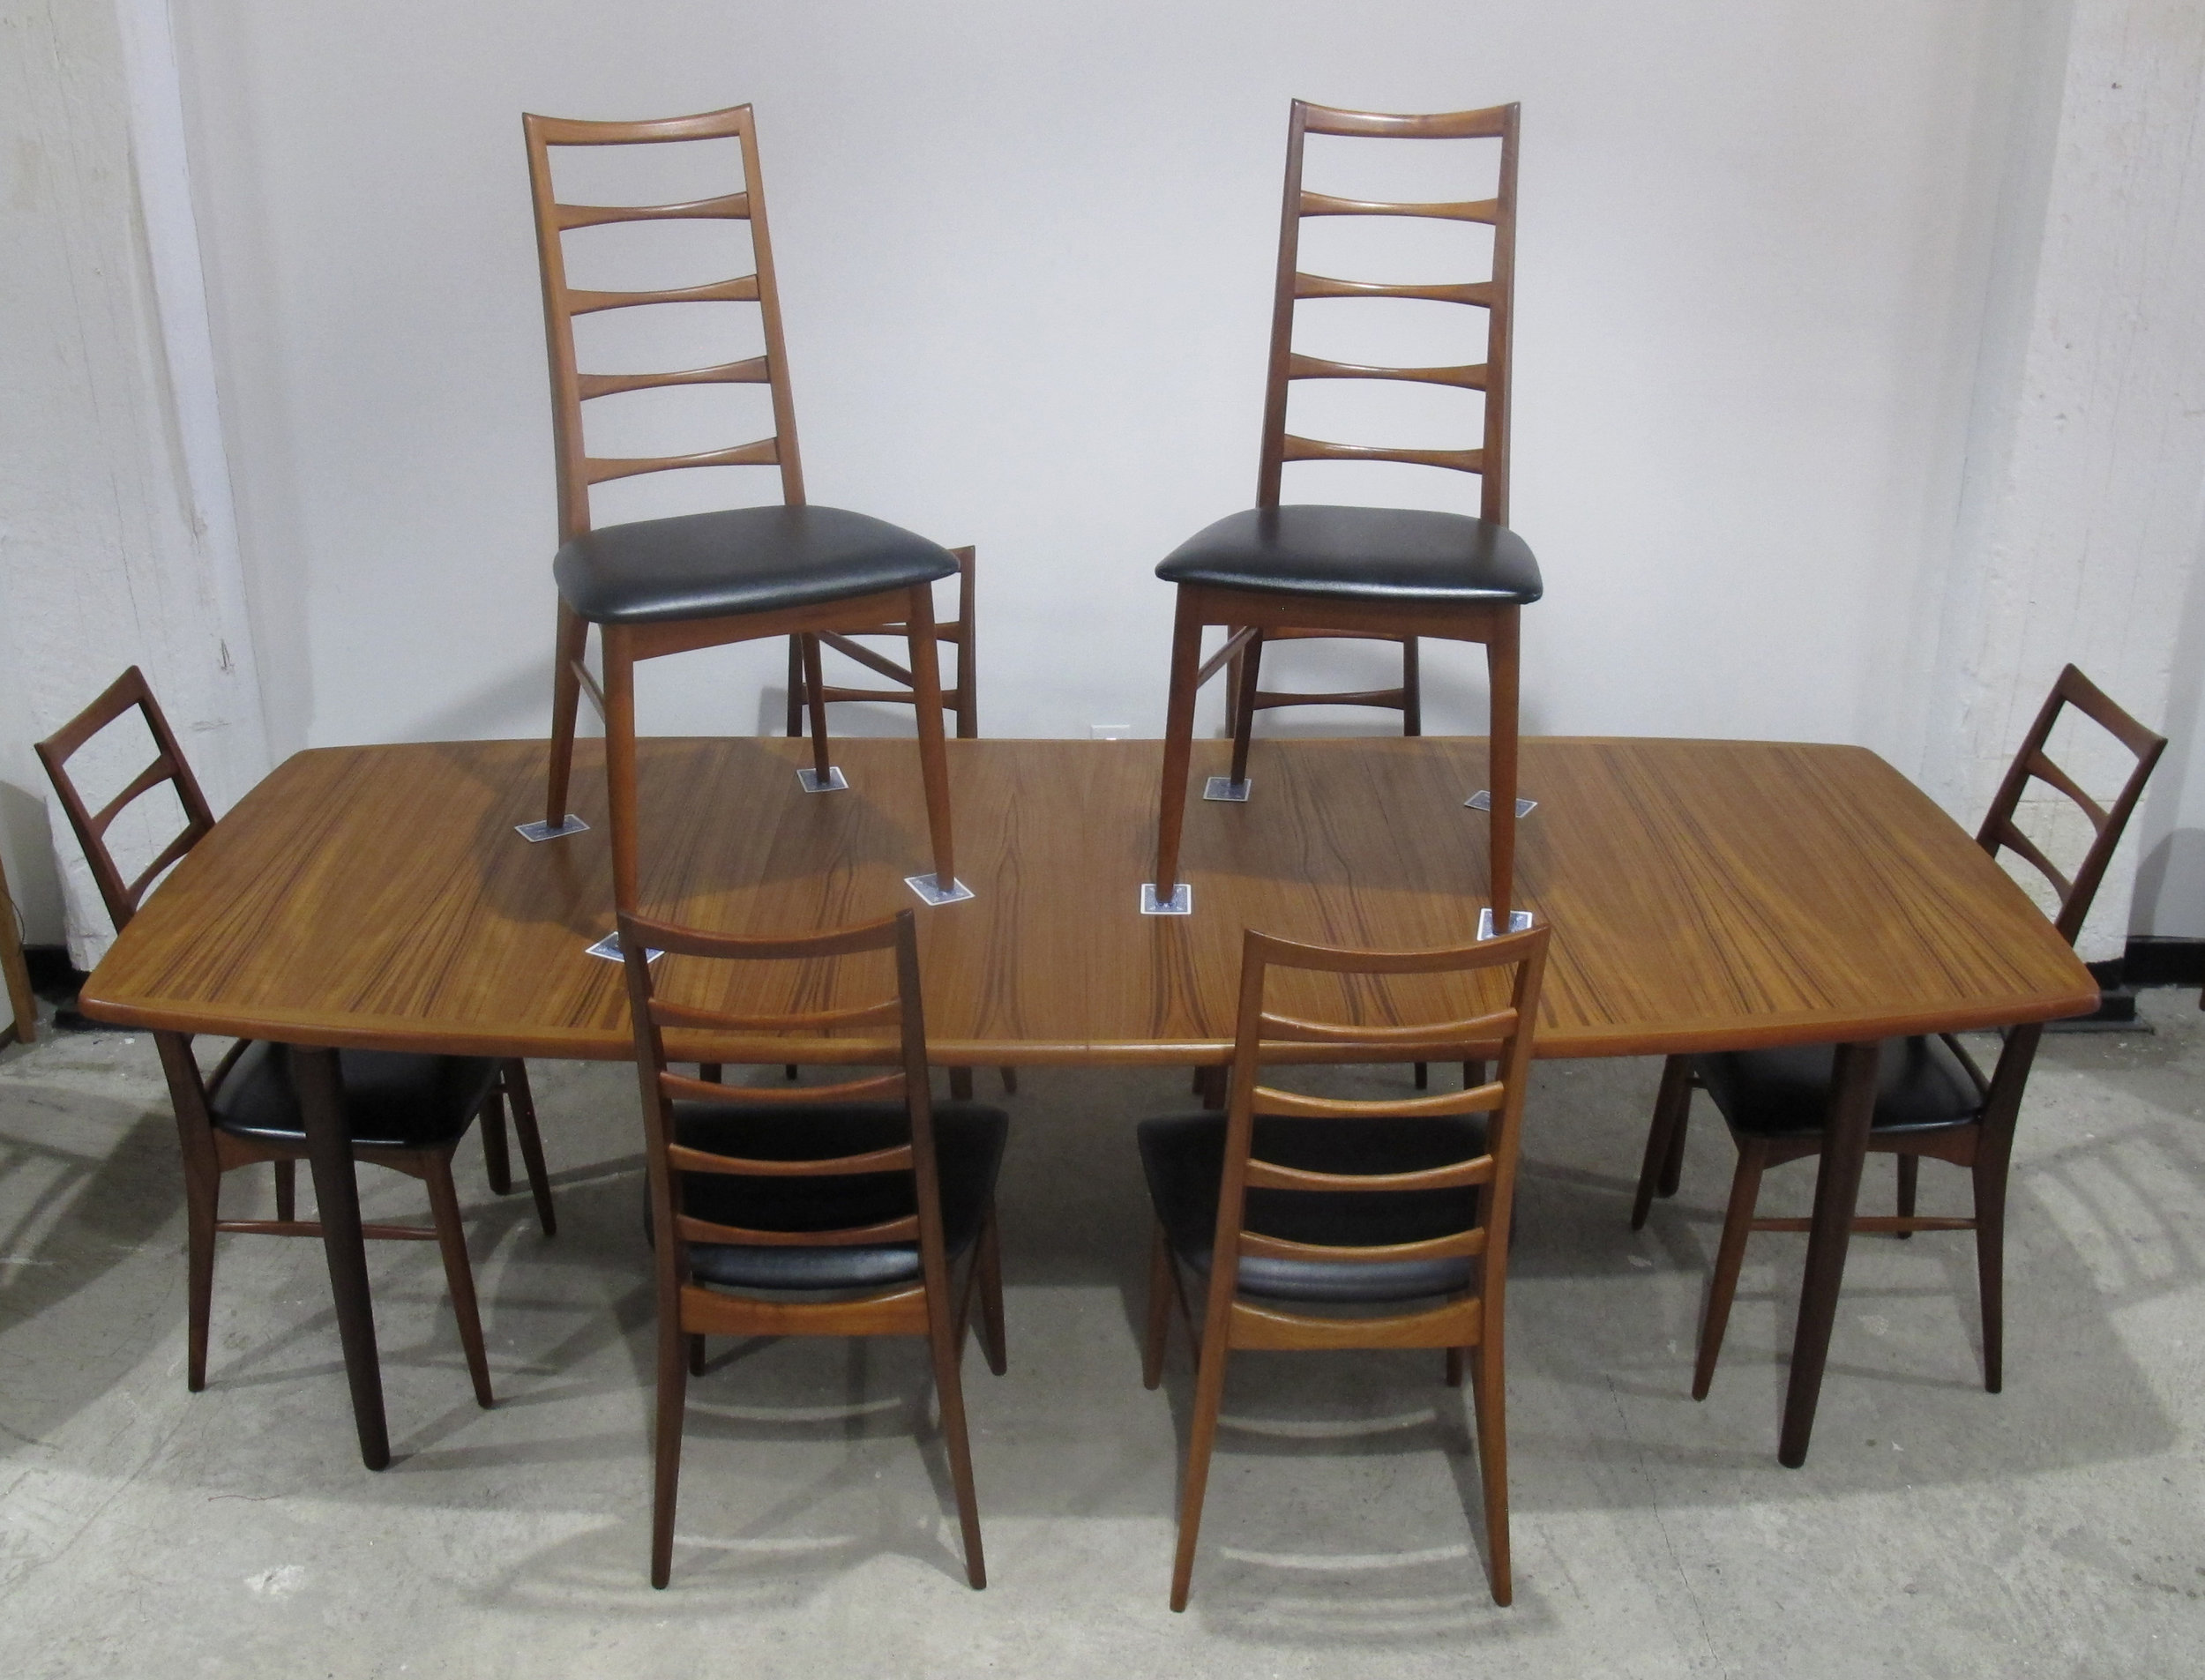 DANISH MODERN TEAK DINING TABLE AND CHAIR SET BY KOEFOEDS HORNSLET